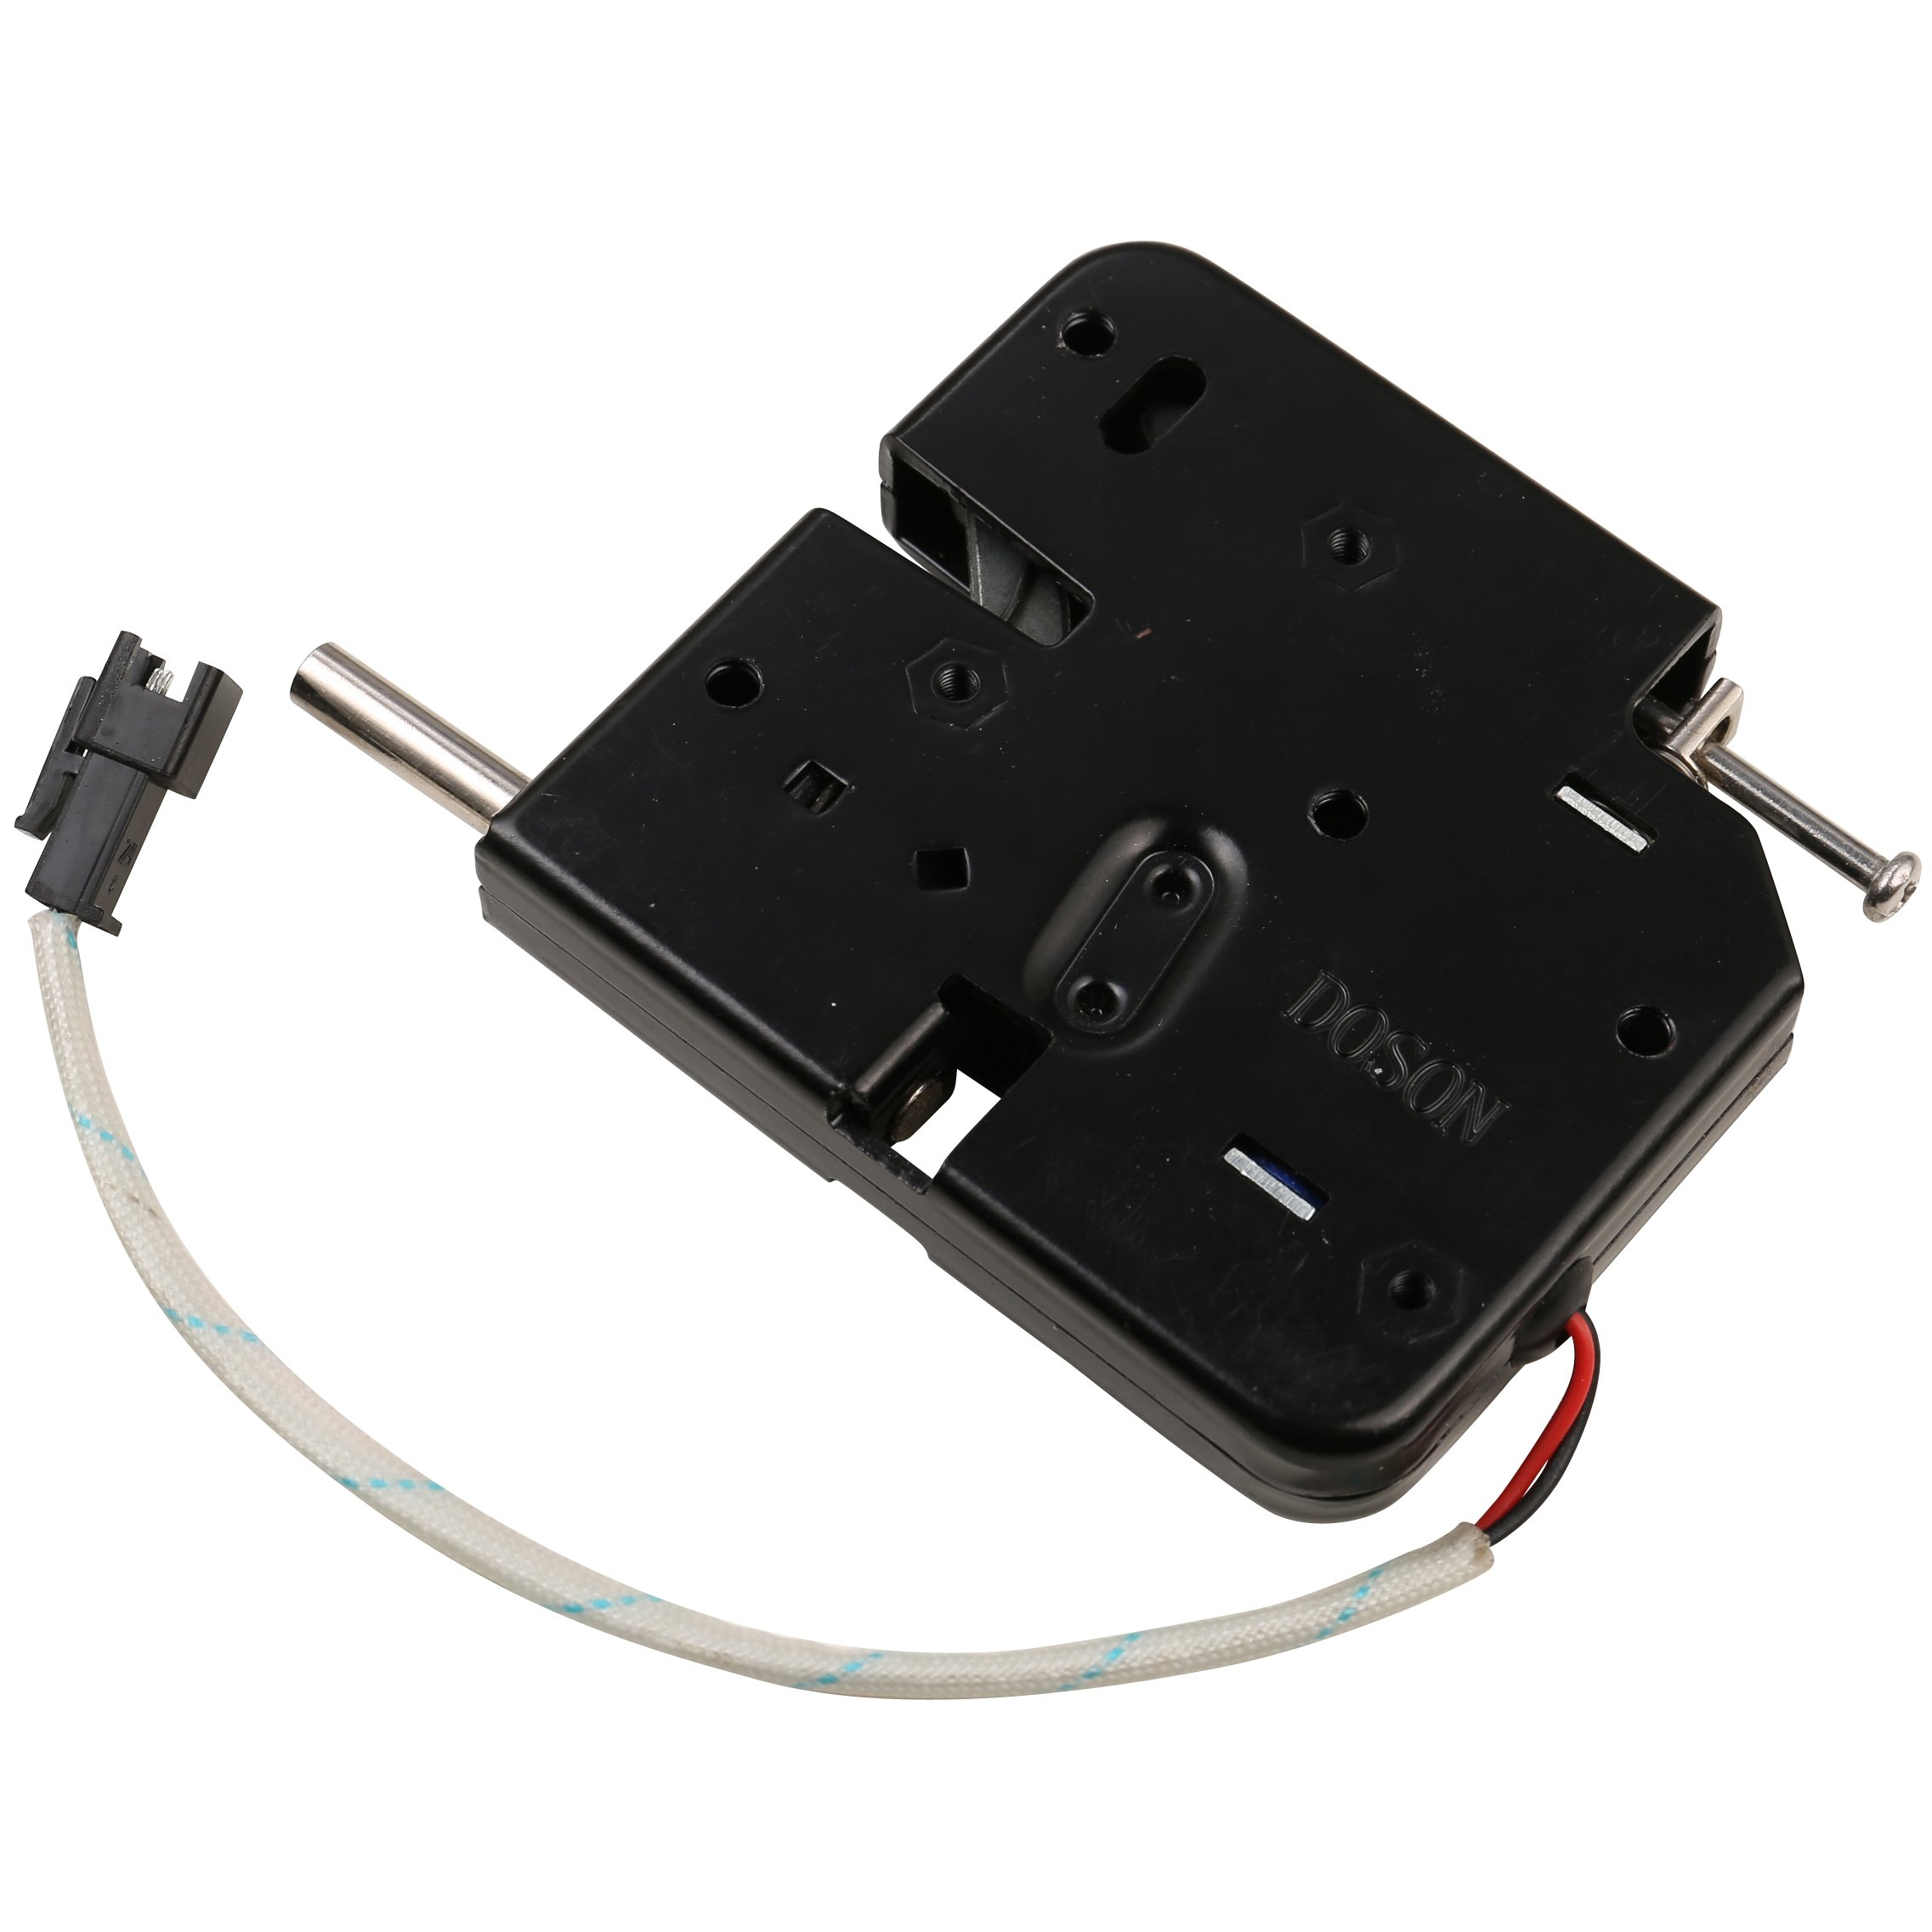 UHPPOTE DC12V Intelligent Electric Solenoid Lock For Automatic Drawer Cabinet Sell-machine Door by UHPPOTE (Image #3)